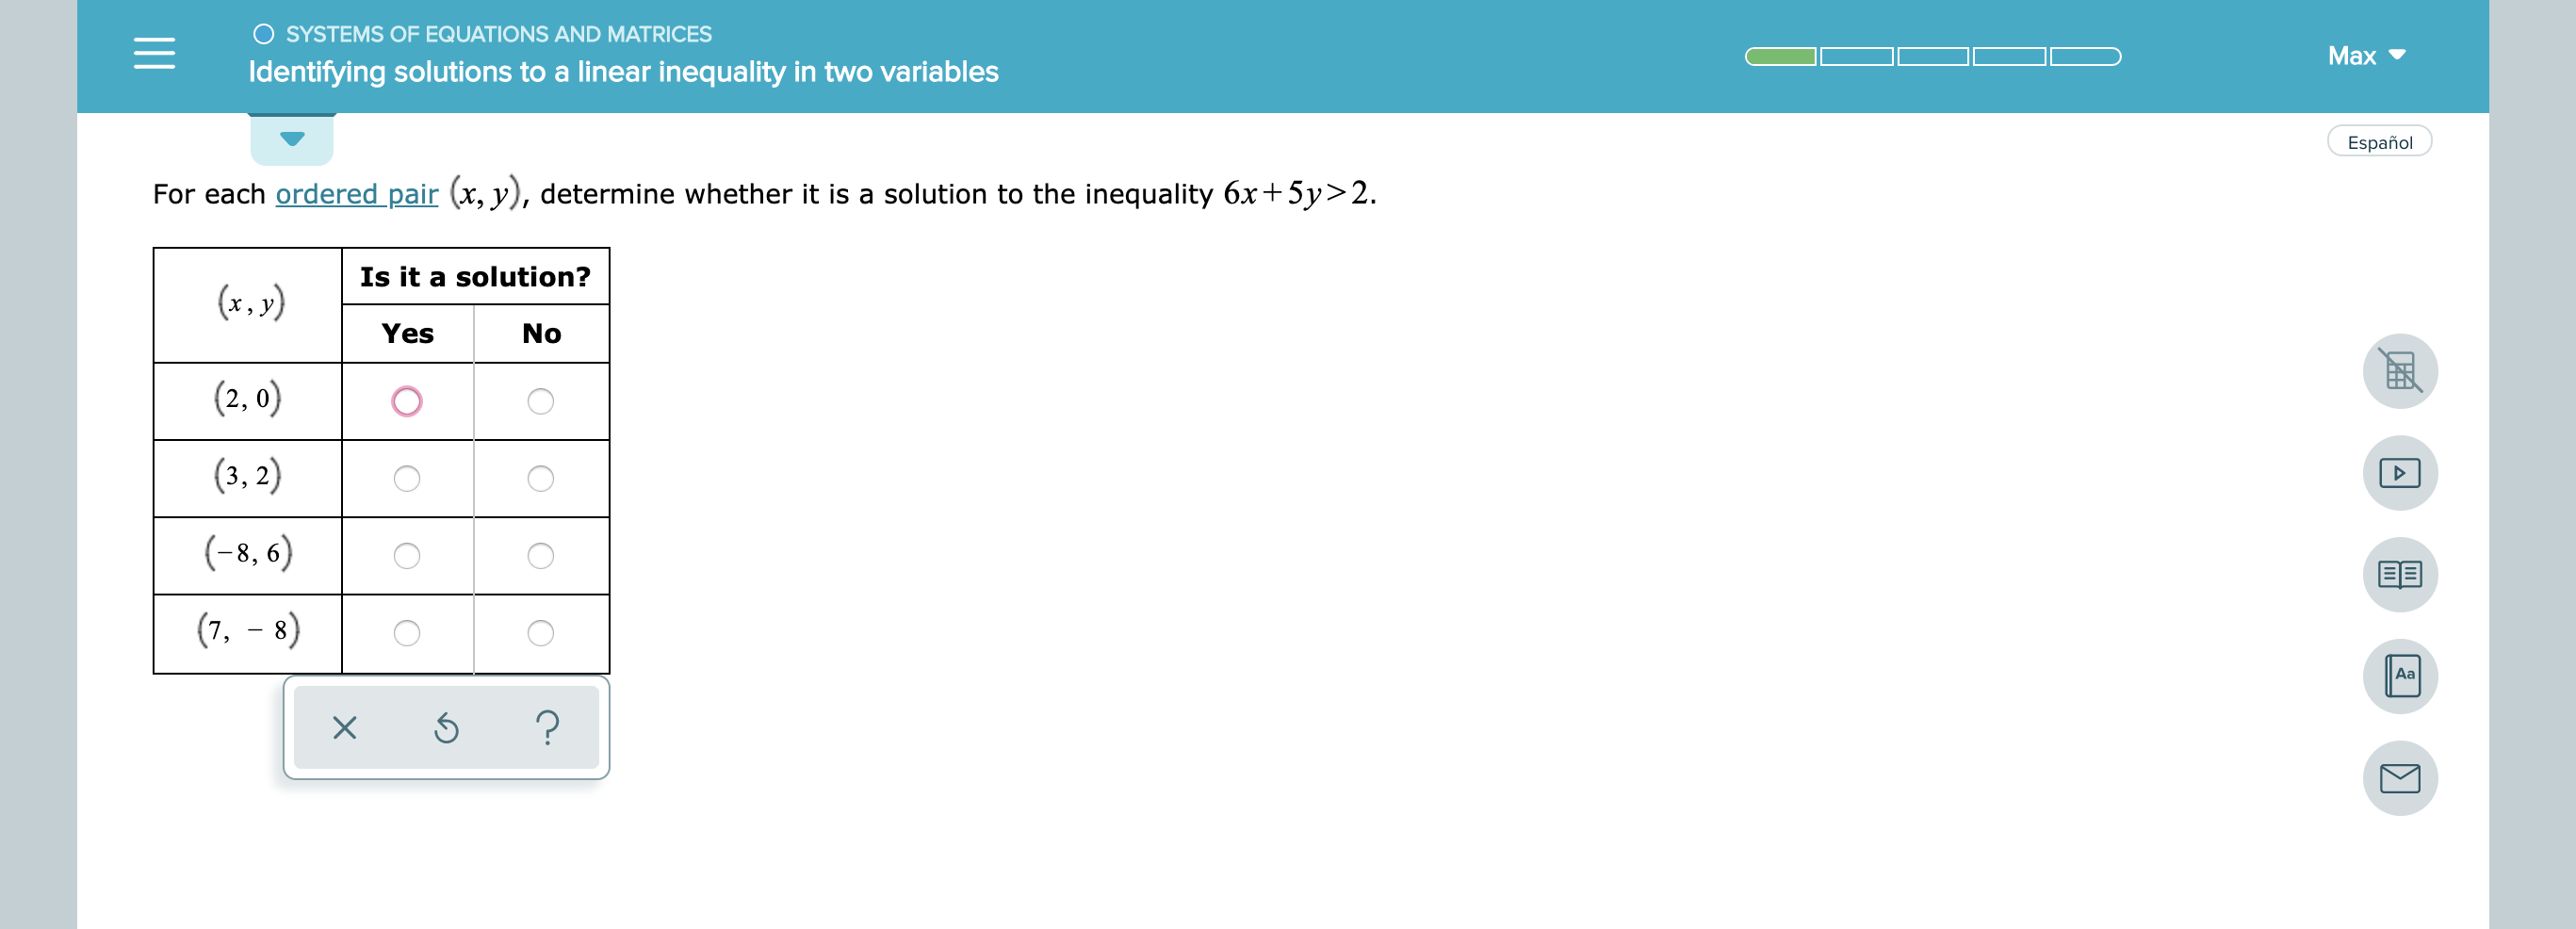 O SYSTEMS OF EQUATIONS AND MATRICES Mаx Identifying solutions to a linear inequality in two variables Español For each ordered pair (x, y), determine whether it is a solution to the inequality 6x5y> 2. Is it a solution? (x.y) Yes No (2, 0) (3, 2) (-8, 6) (7, 8) Aa ? X